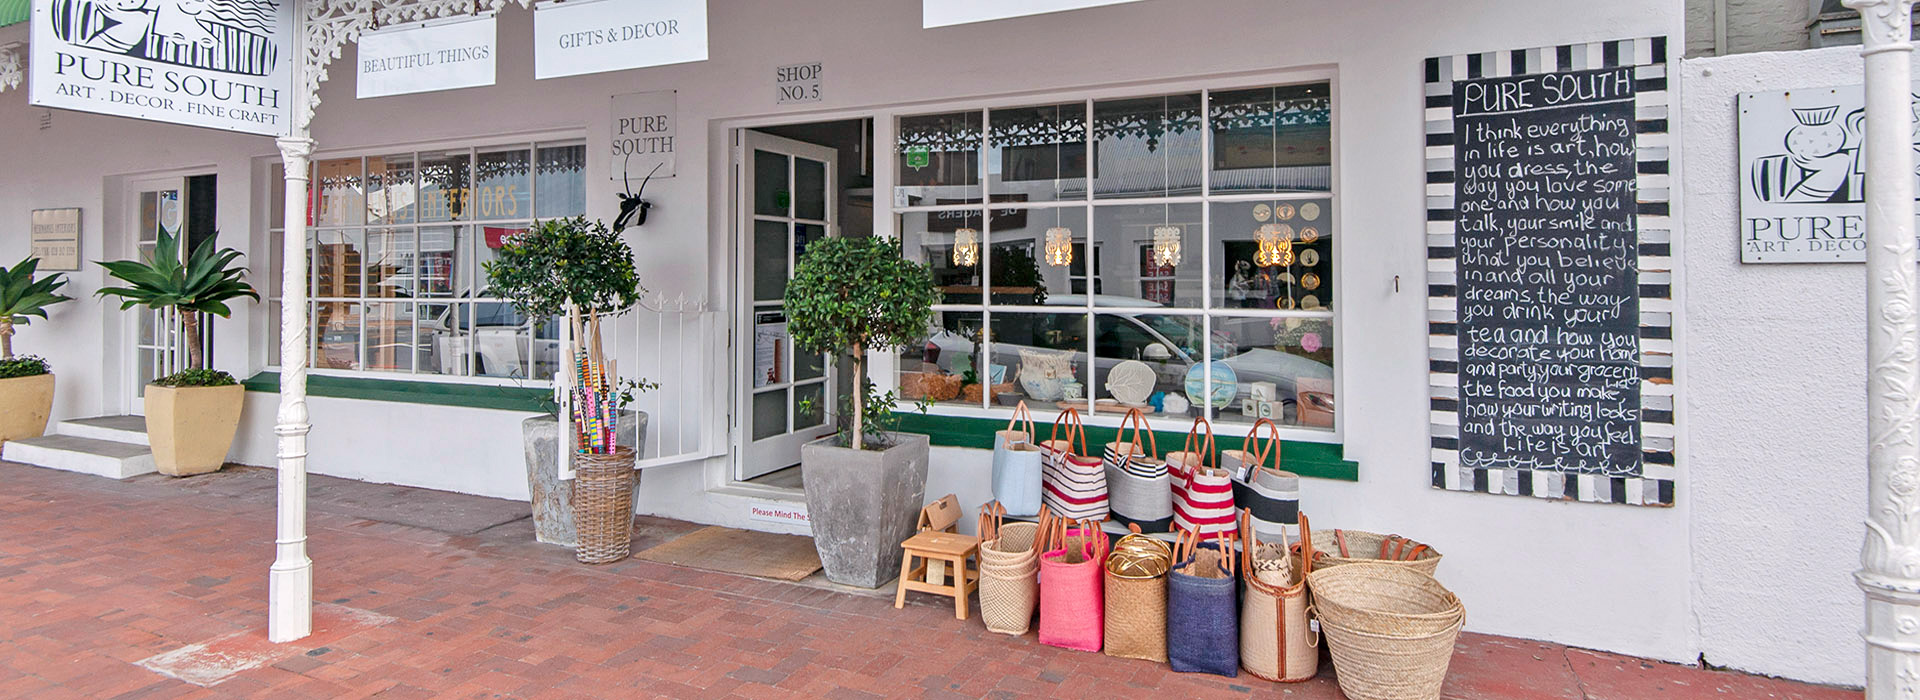 Handmade decor shop Hermanus South Africa